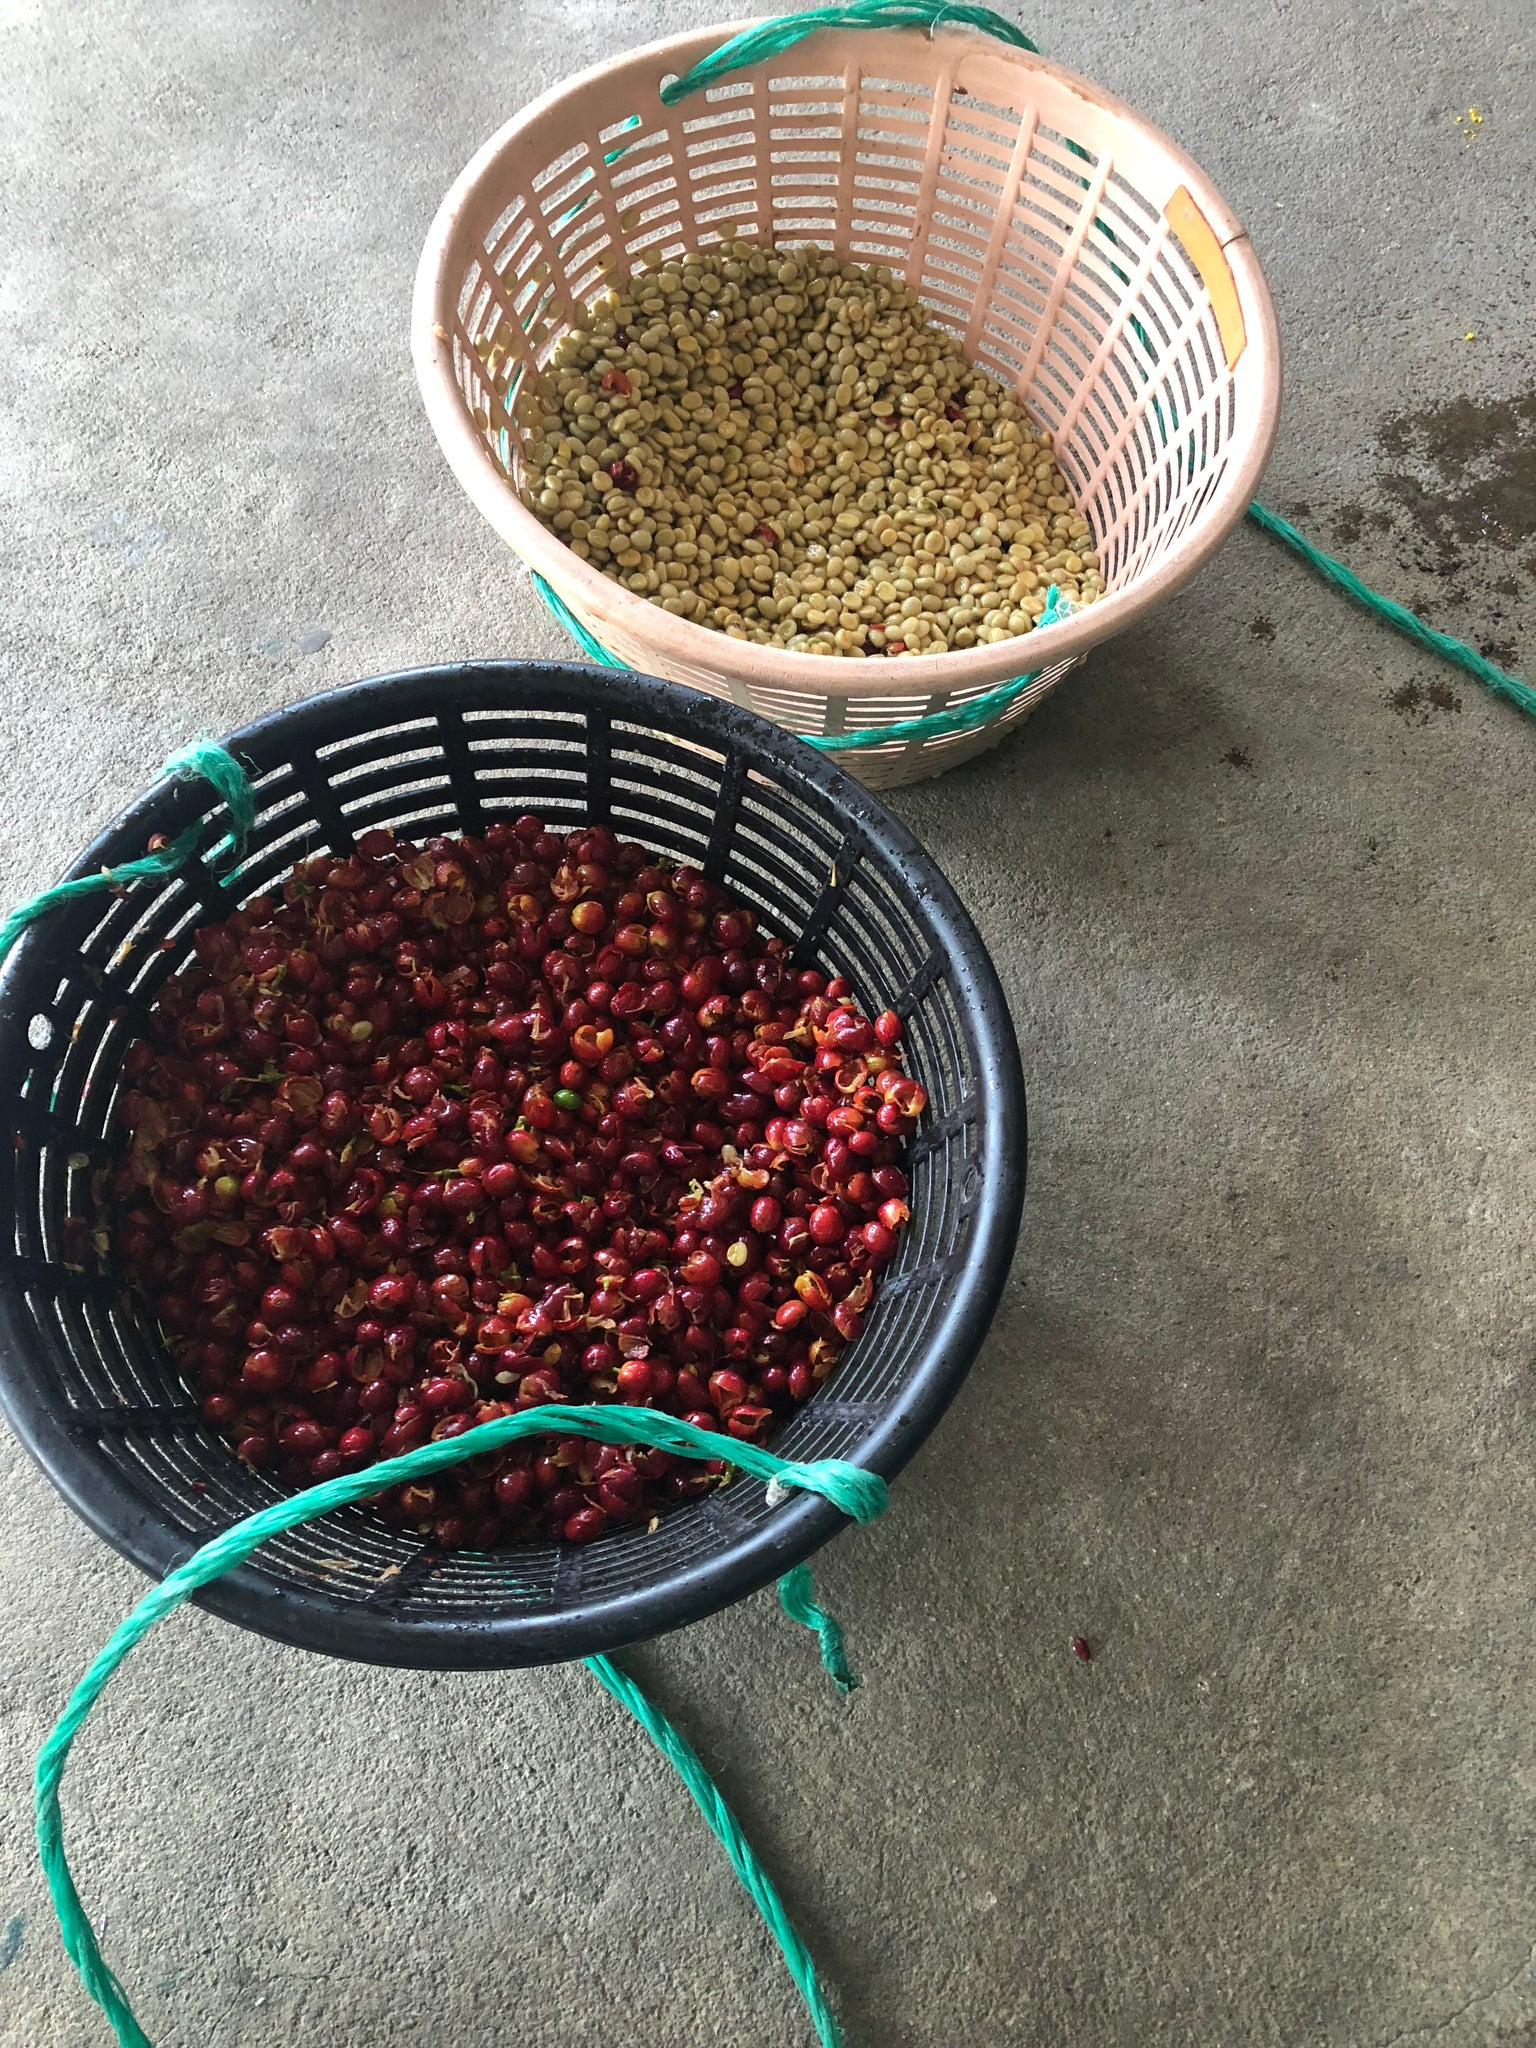 Processing our harvested coffee.